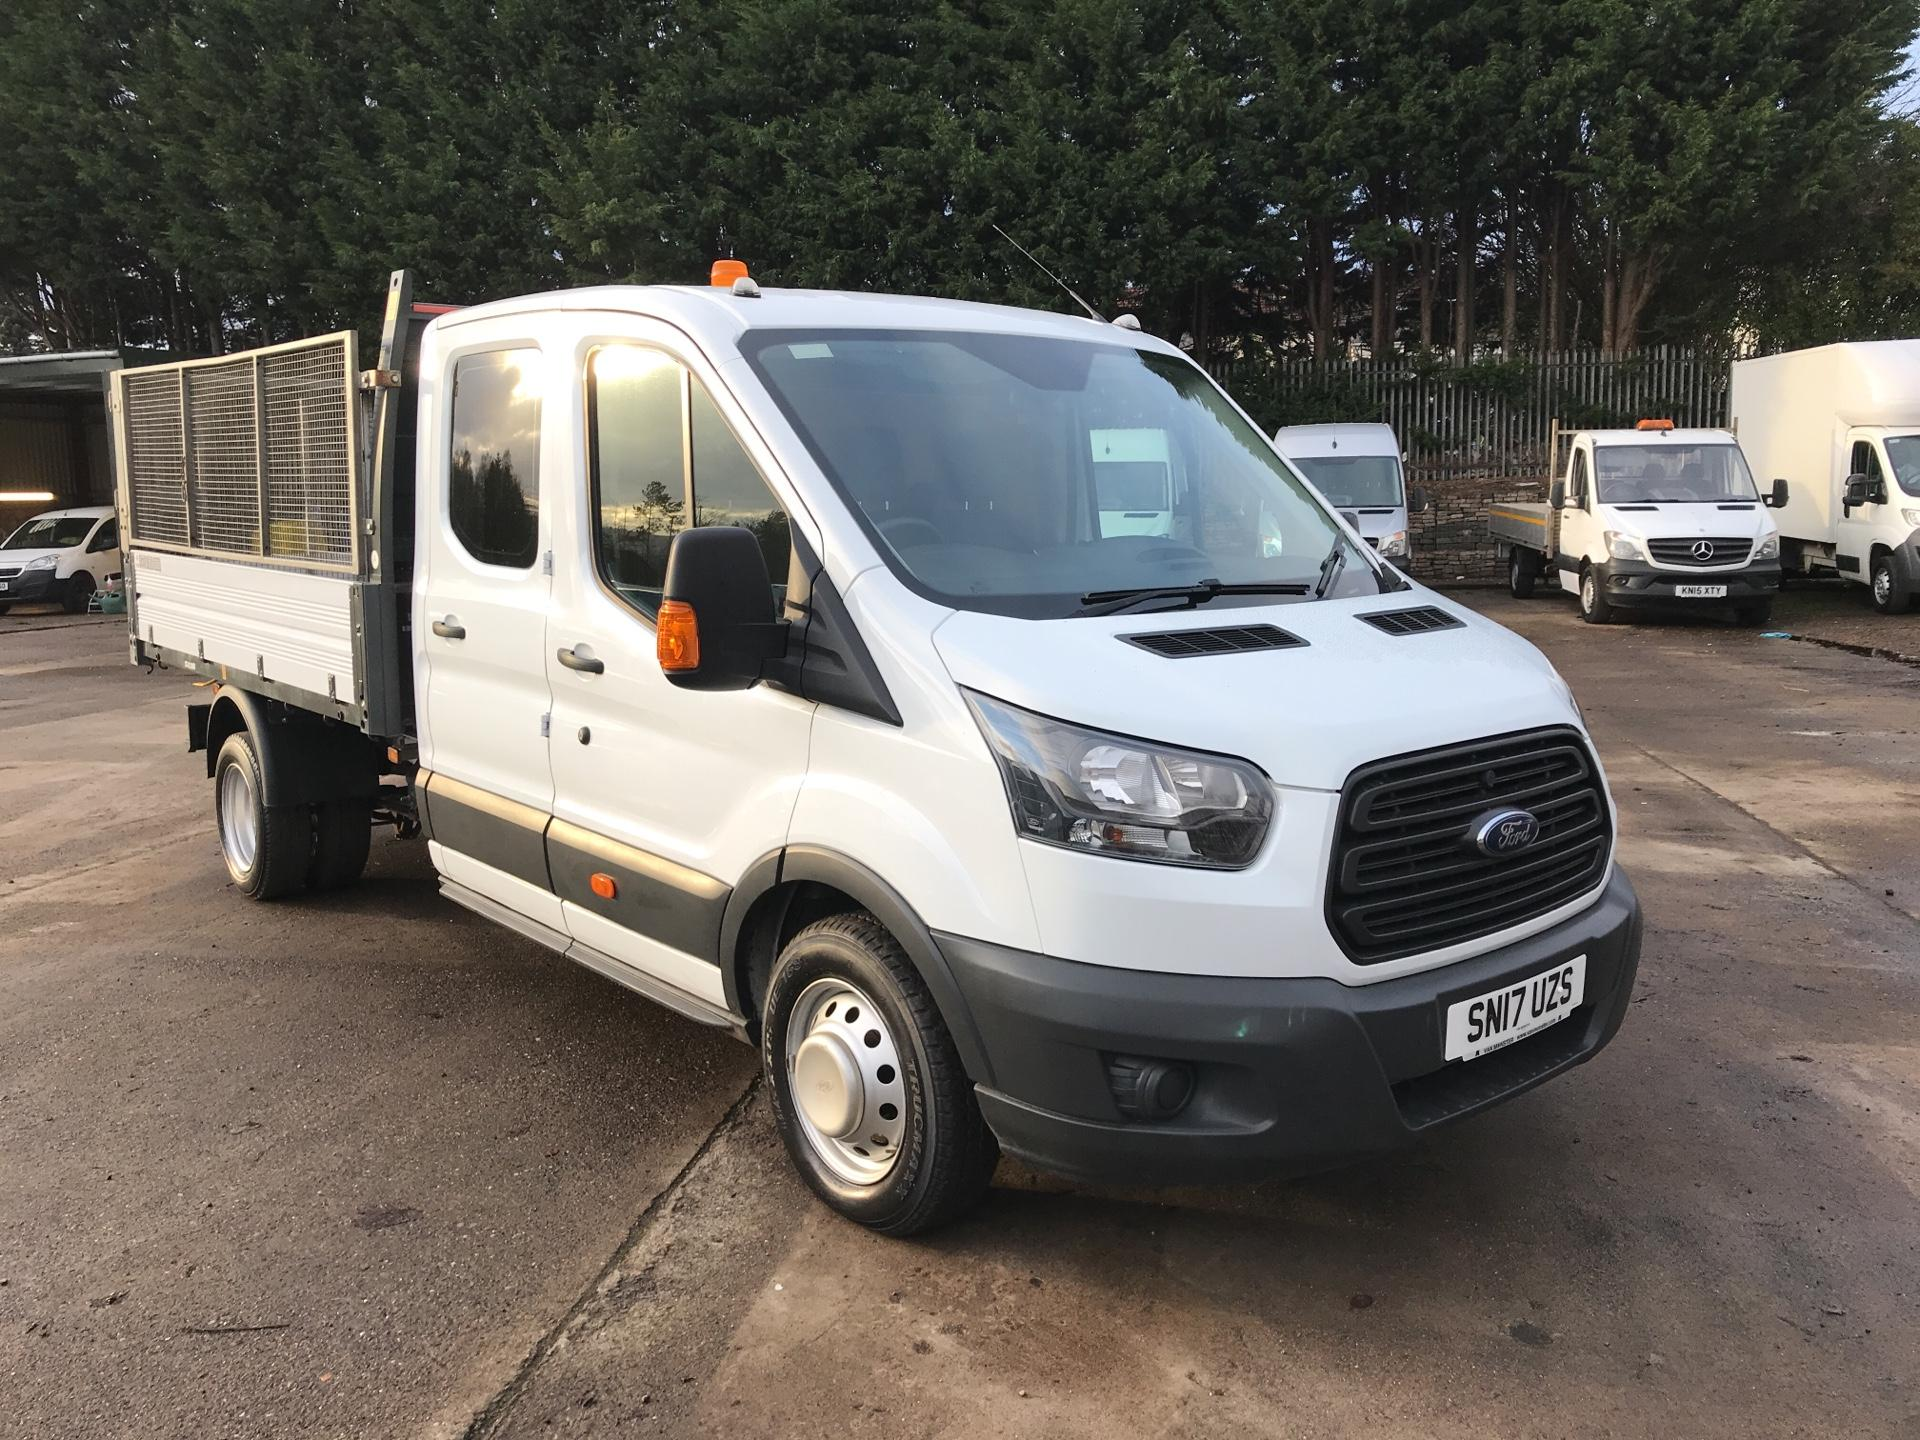 2017 Ford Transit  350 L3 DOUBLE CAB TIPPER 130PS EURO 5  *VALUE RANGE VEHICLE - CONDITION REFLECTED IN PRICE) *NO REAR SEATS* (SN17UZS)